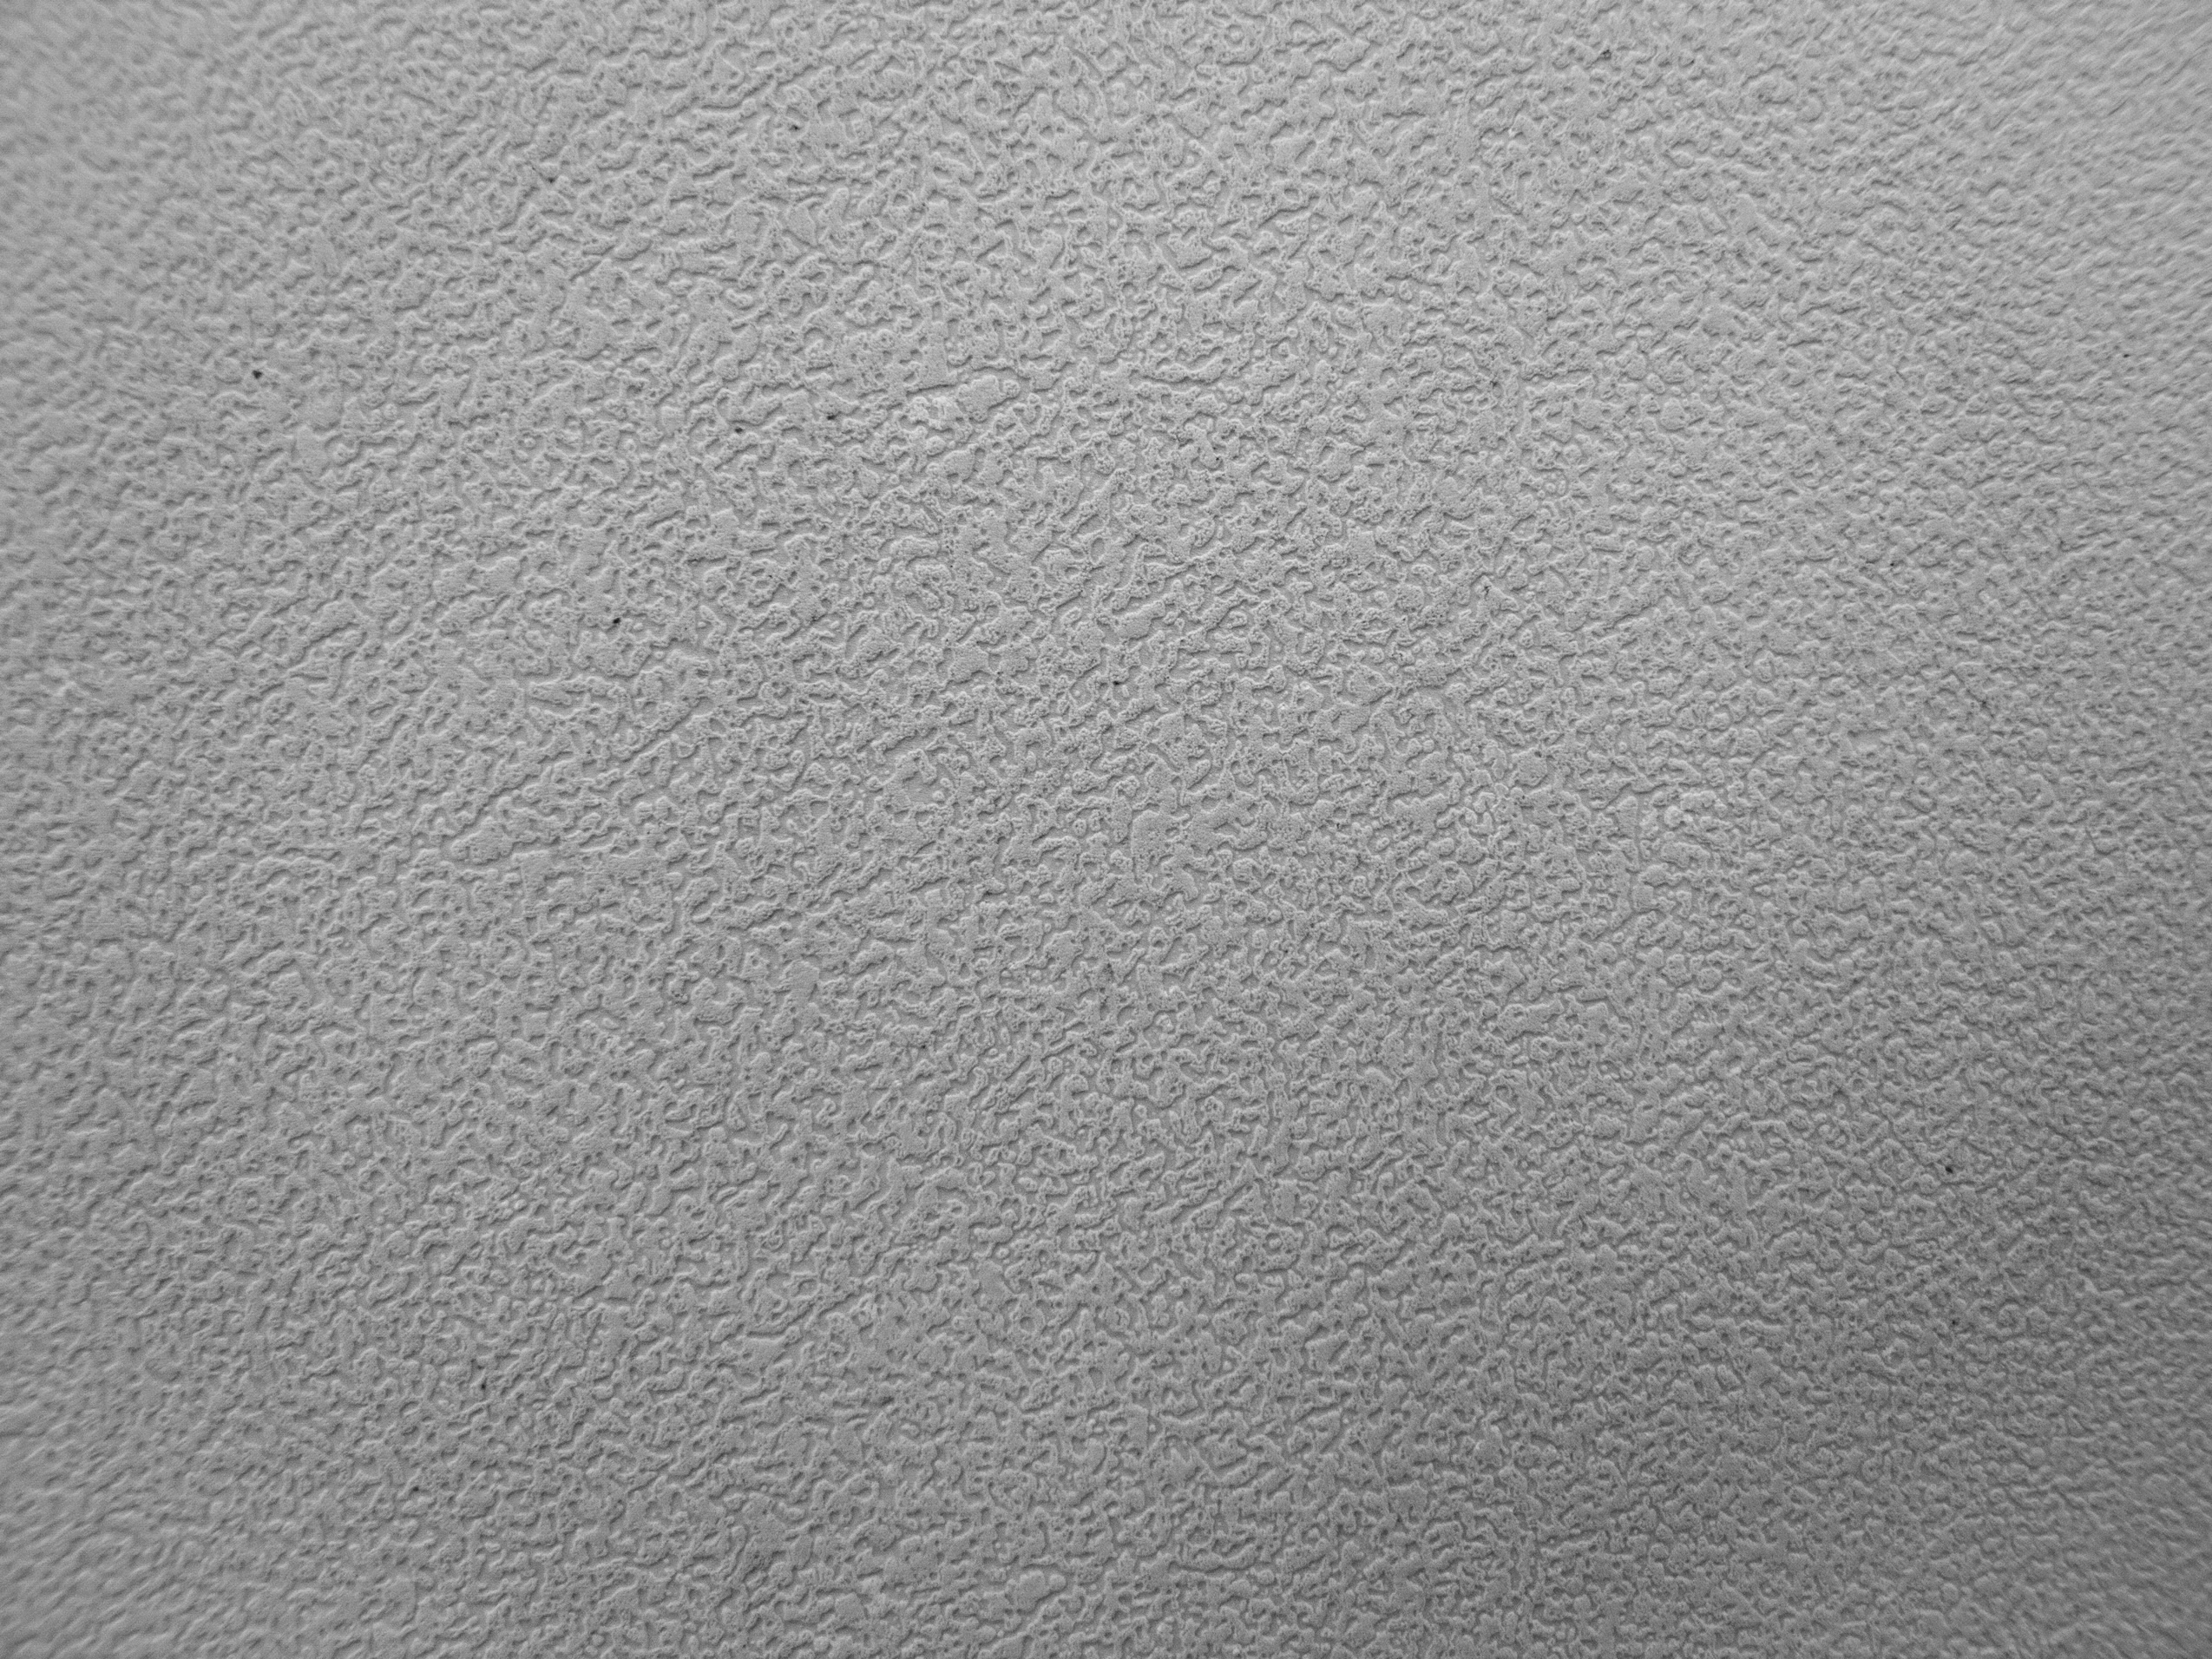 gray plastic material texture, plastic, download photo, plastic texture background